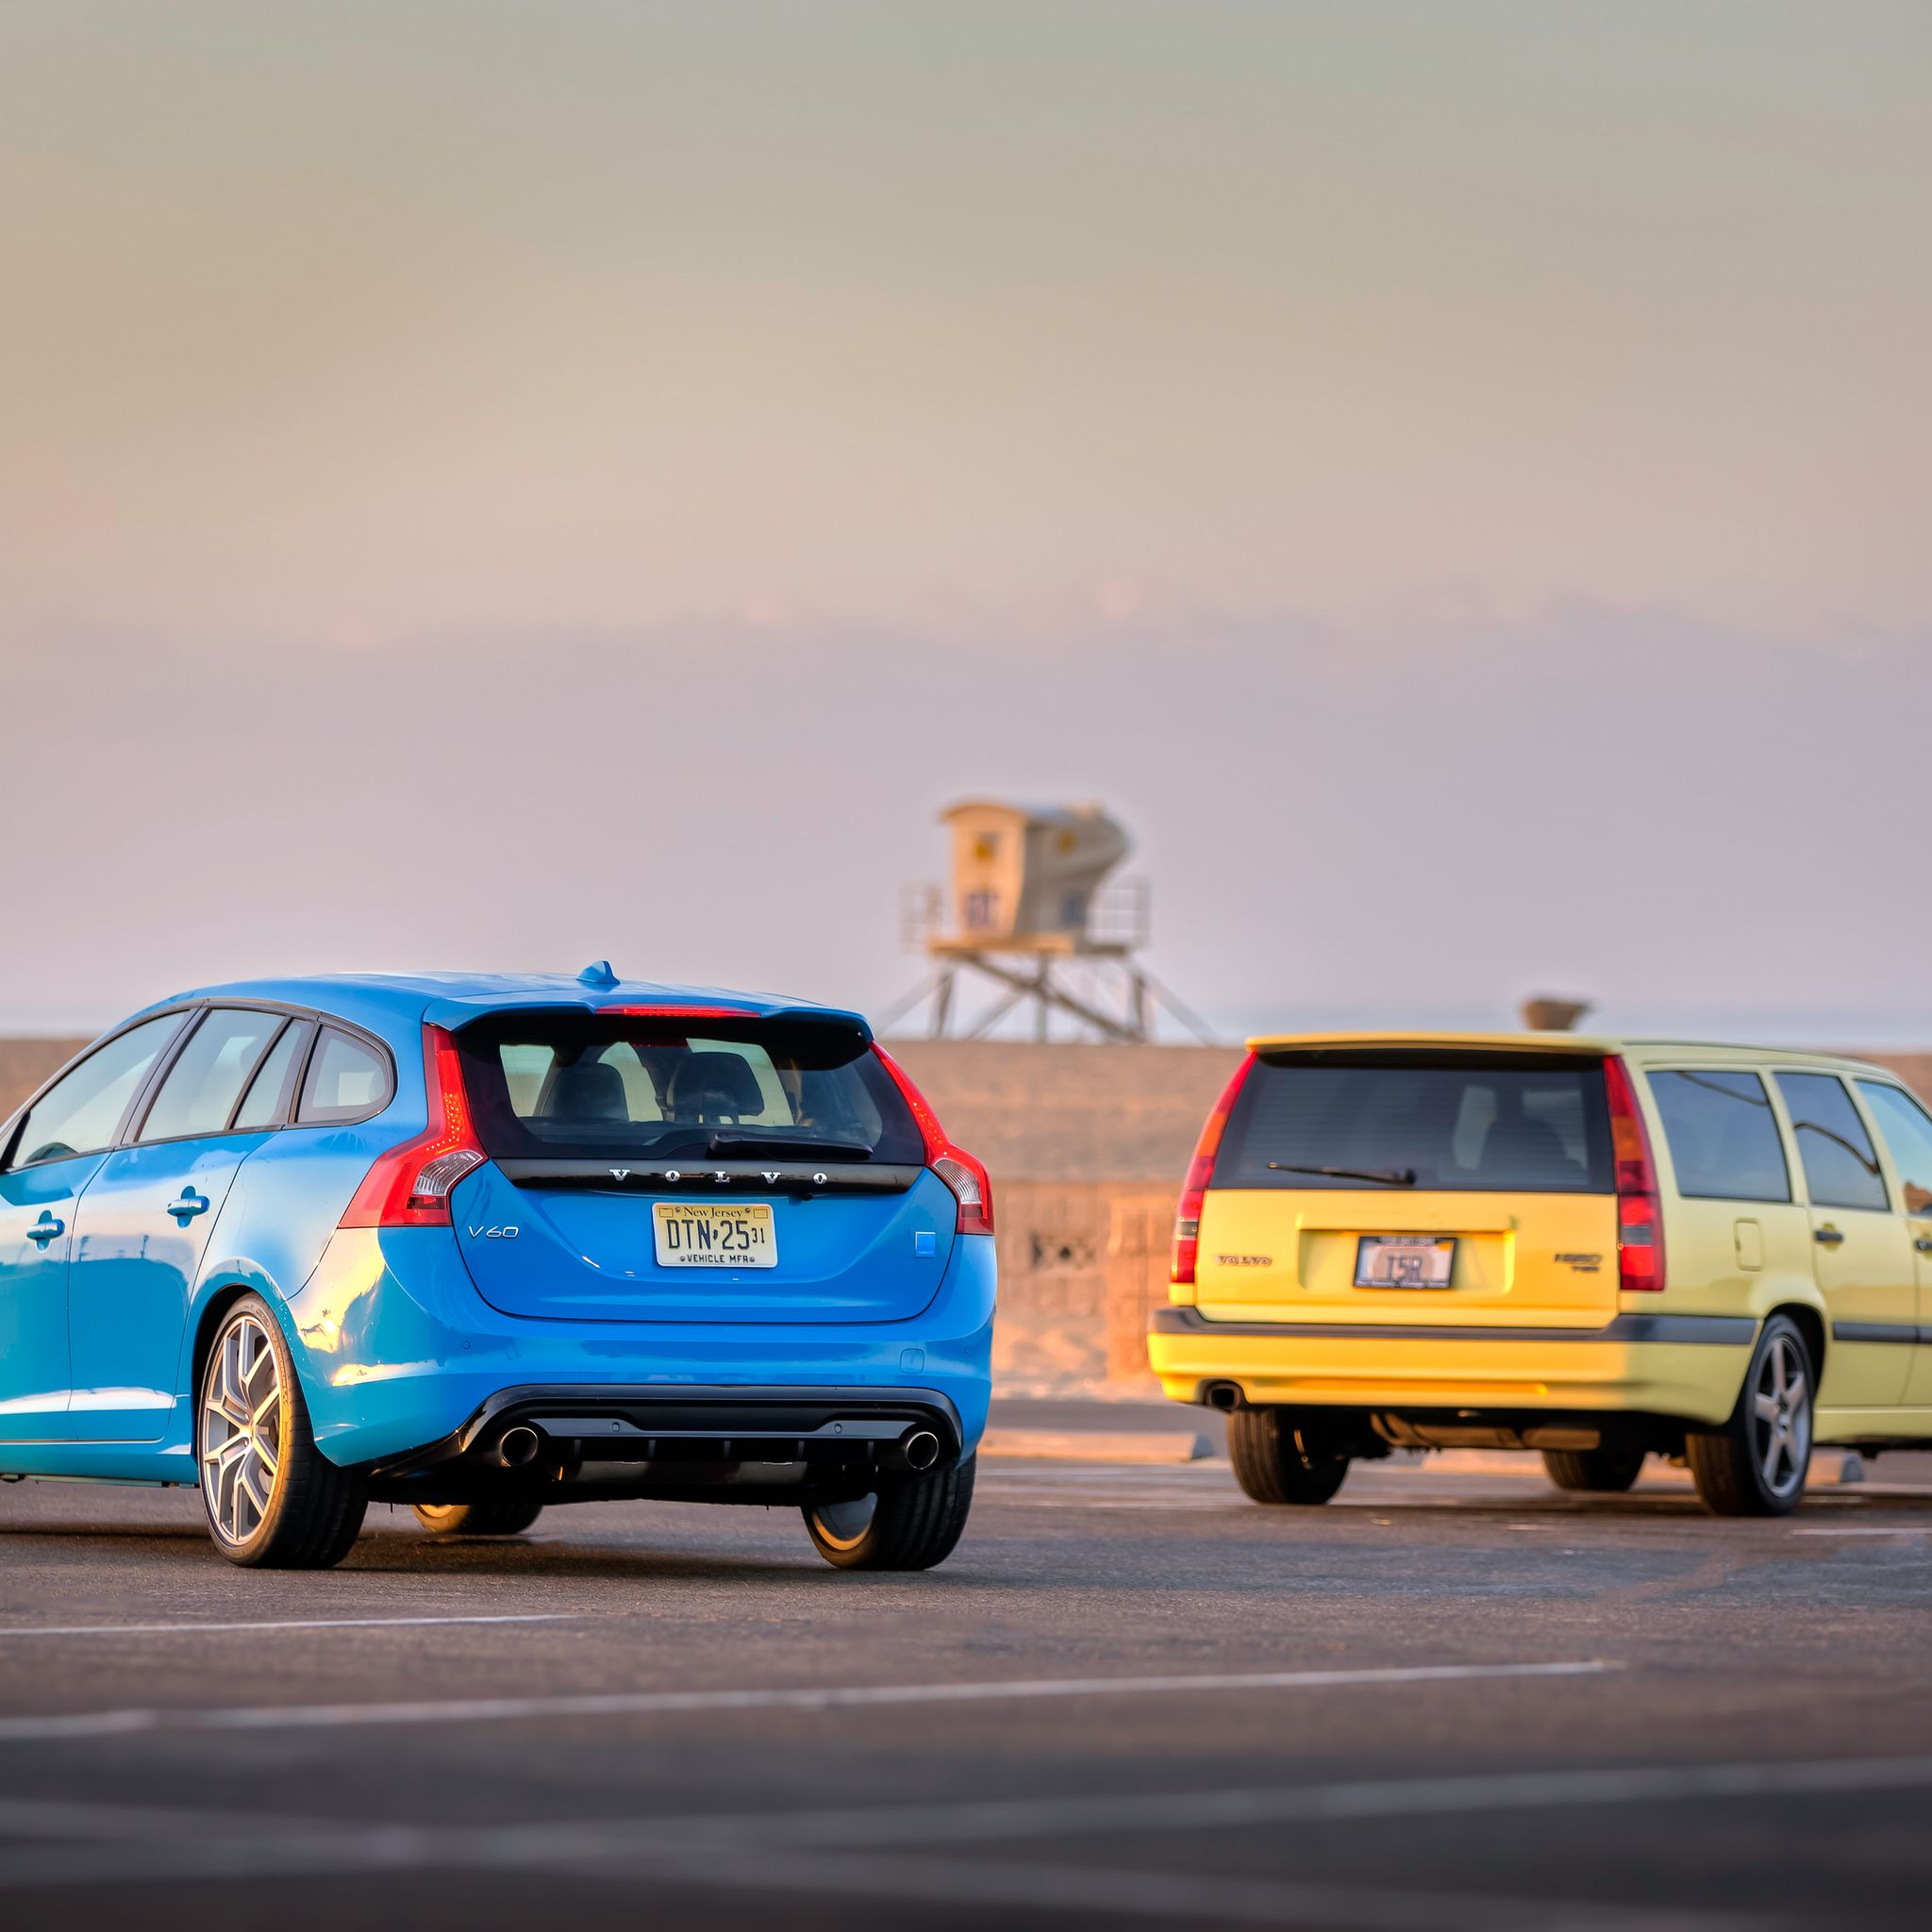 Volvo Car Wallpaper: These Incredible 850 T5-R/V60 Polestar Pics Are The